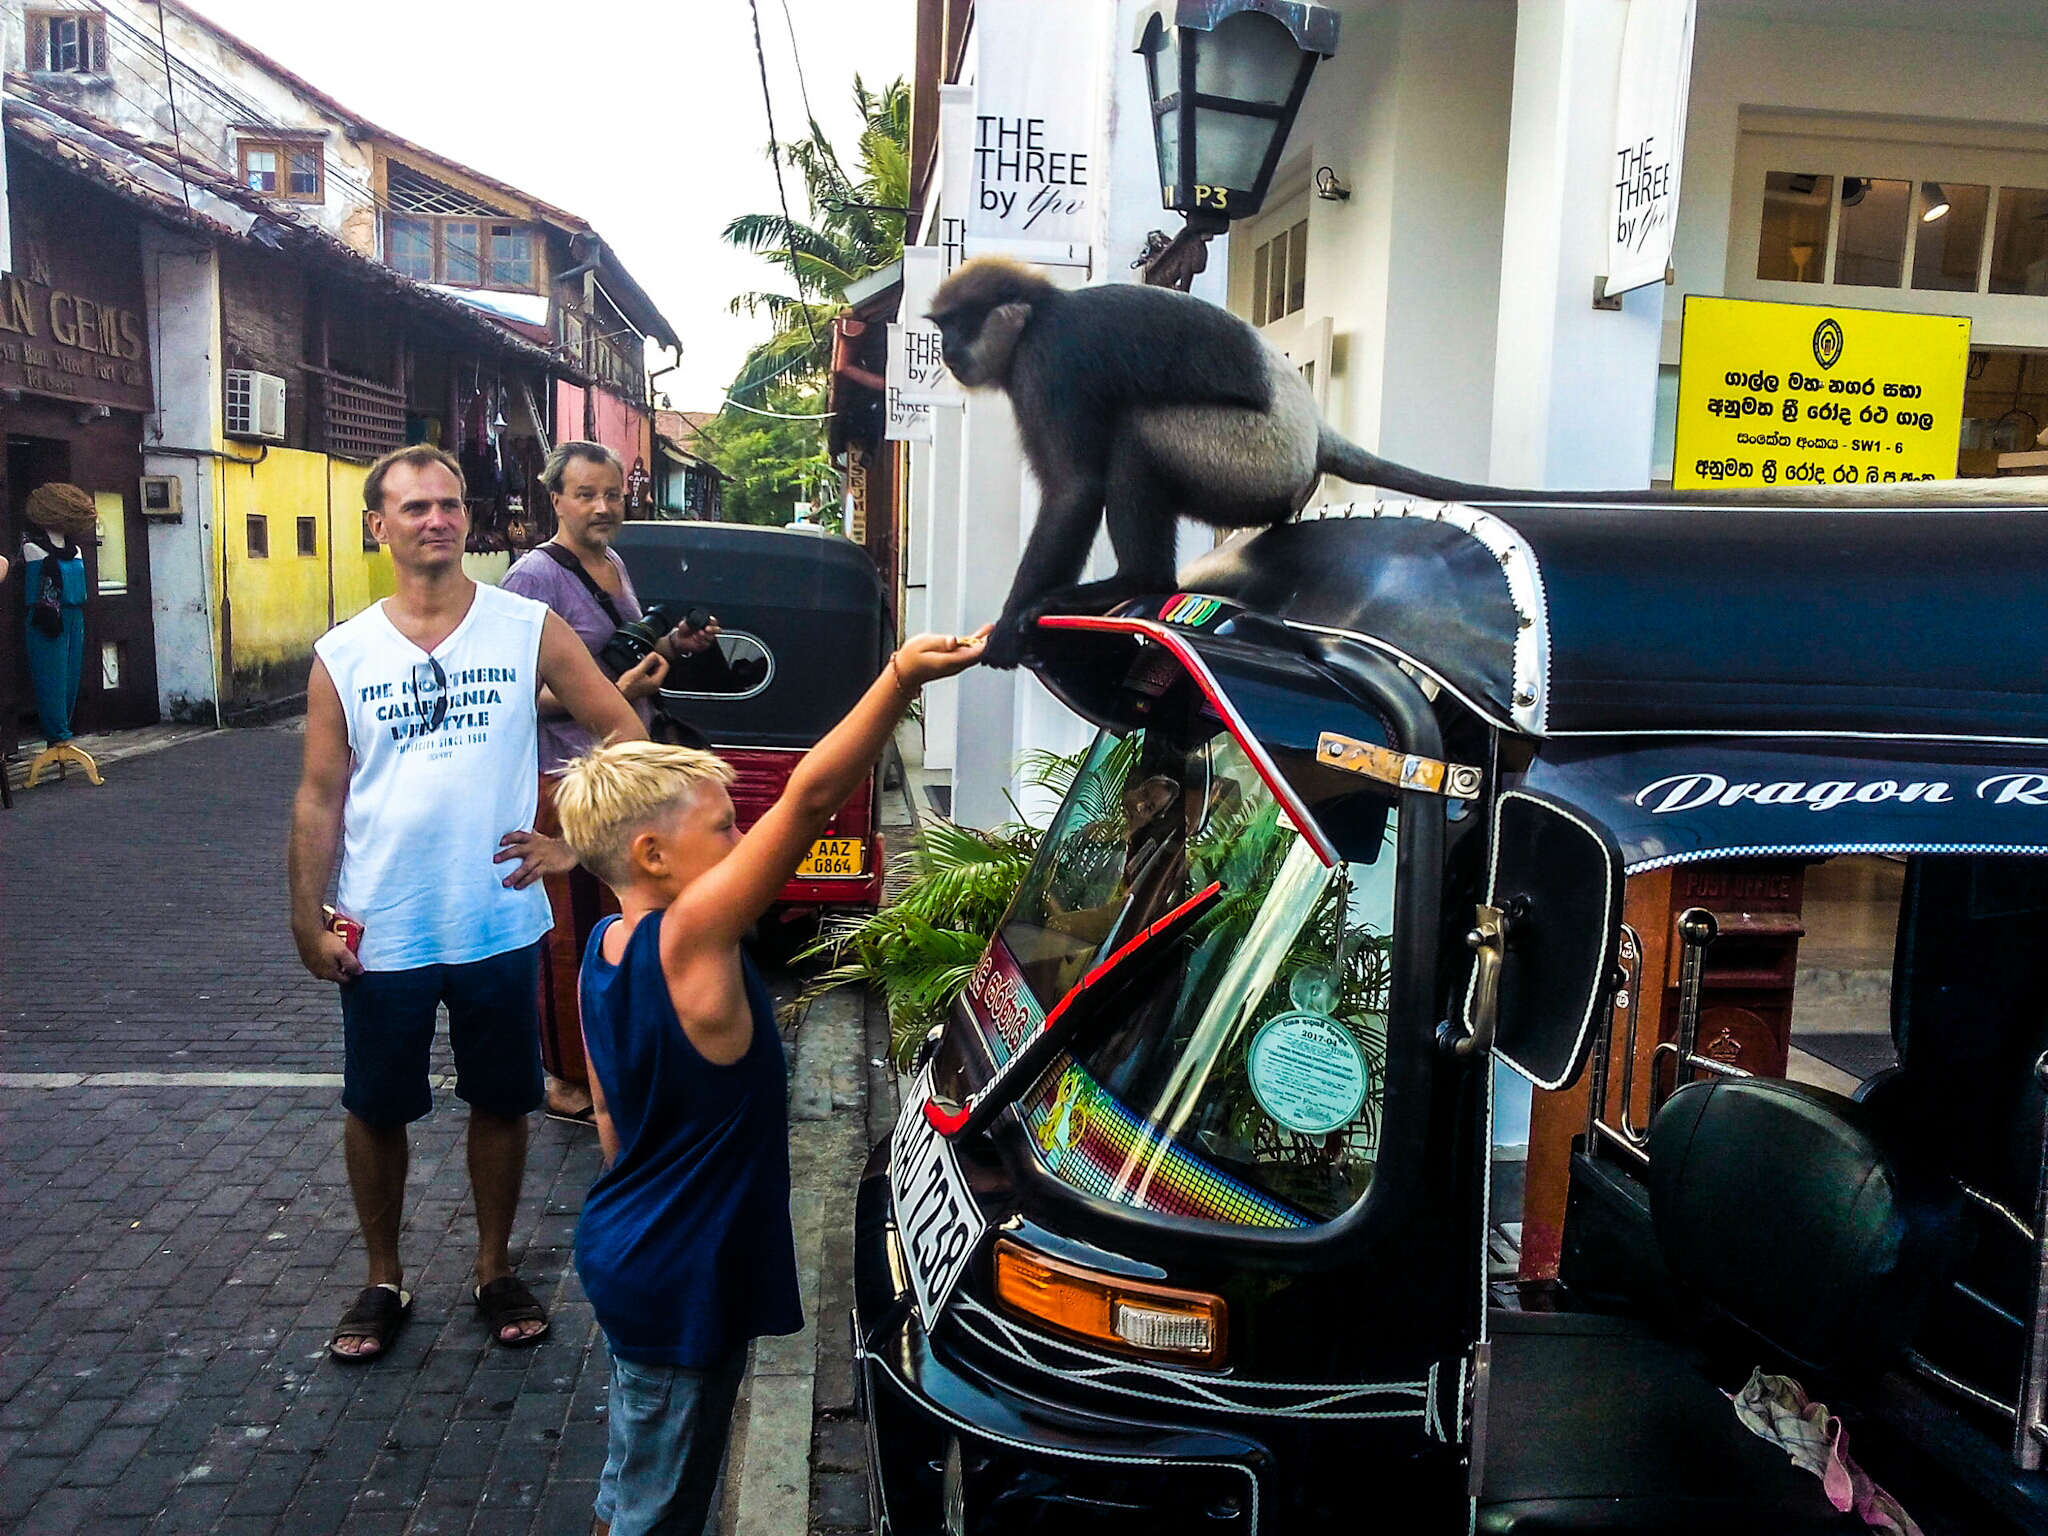 Funny encounter in Galle